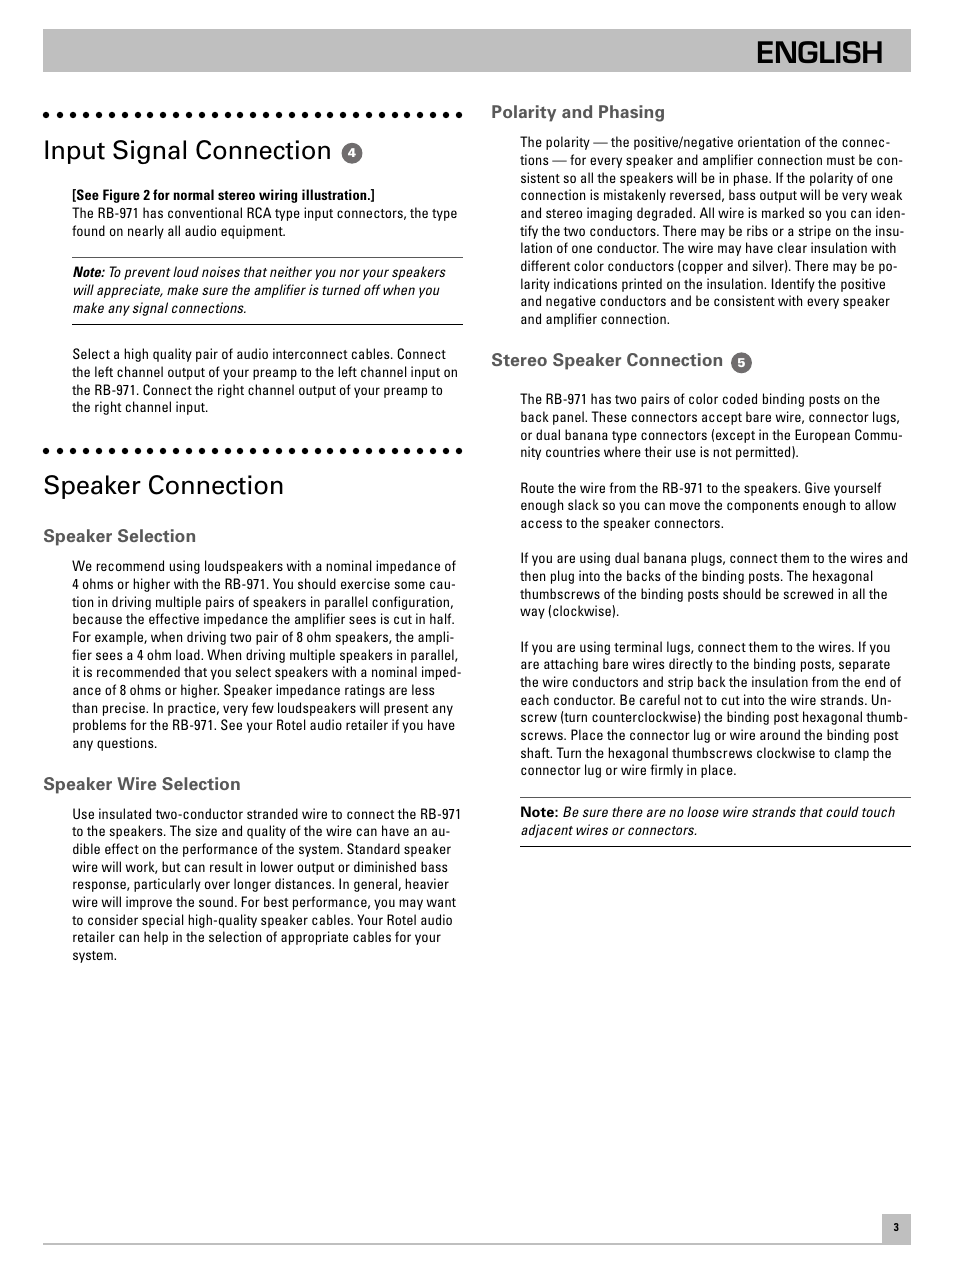 hight resolution of english input signal connection speaker connection rotel rb 971 user manual page 7 11